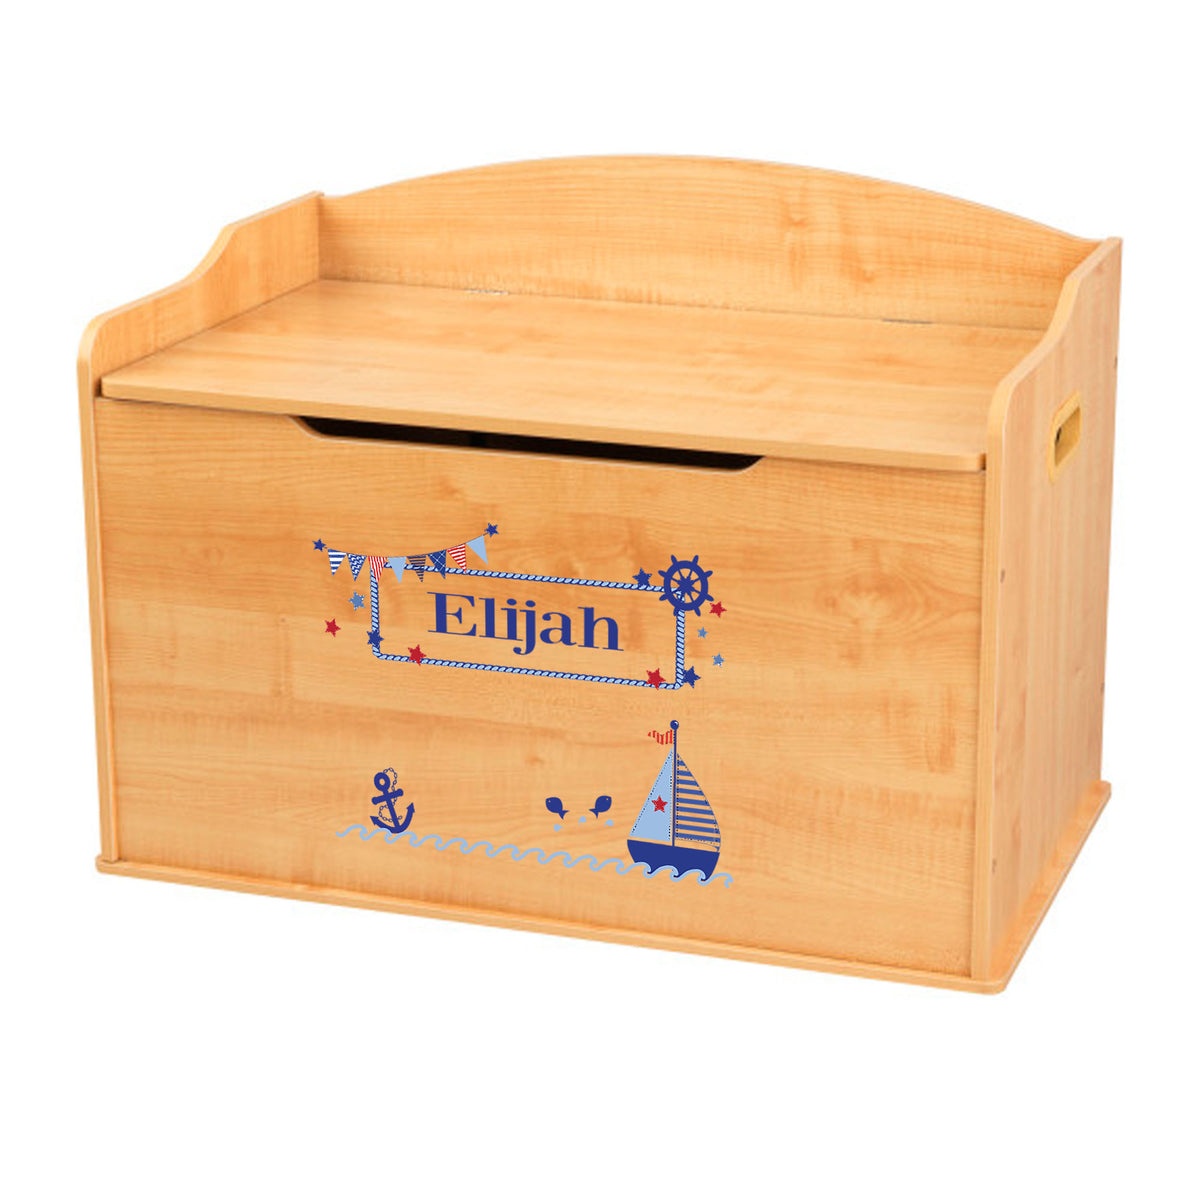 Sailboat Toy Box Cheaper Than Retail Price Buy Clothing Accessories And Lifestyle Products For Women Men